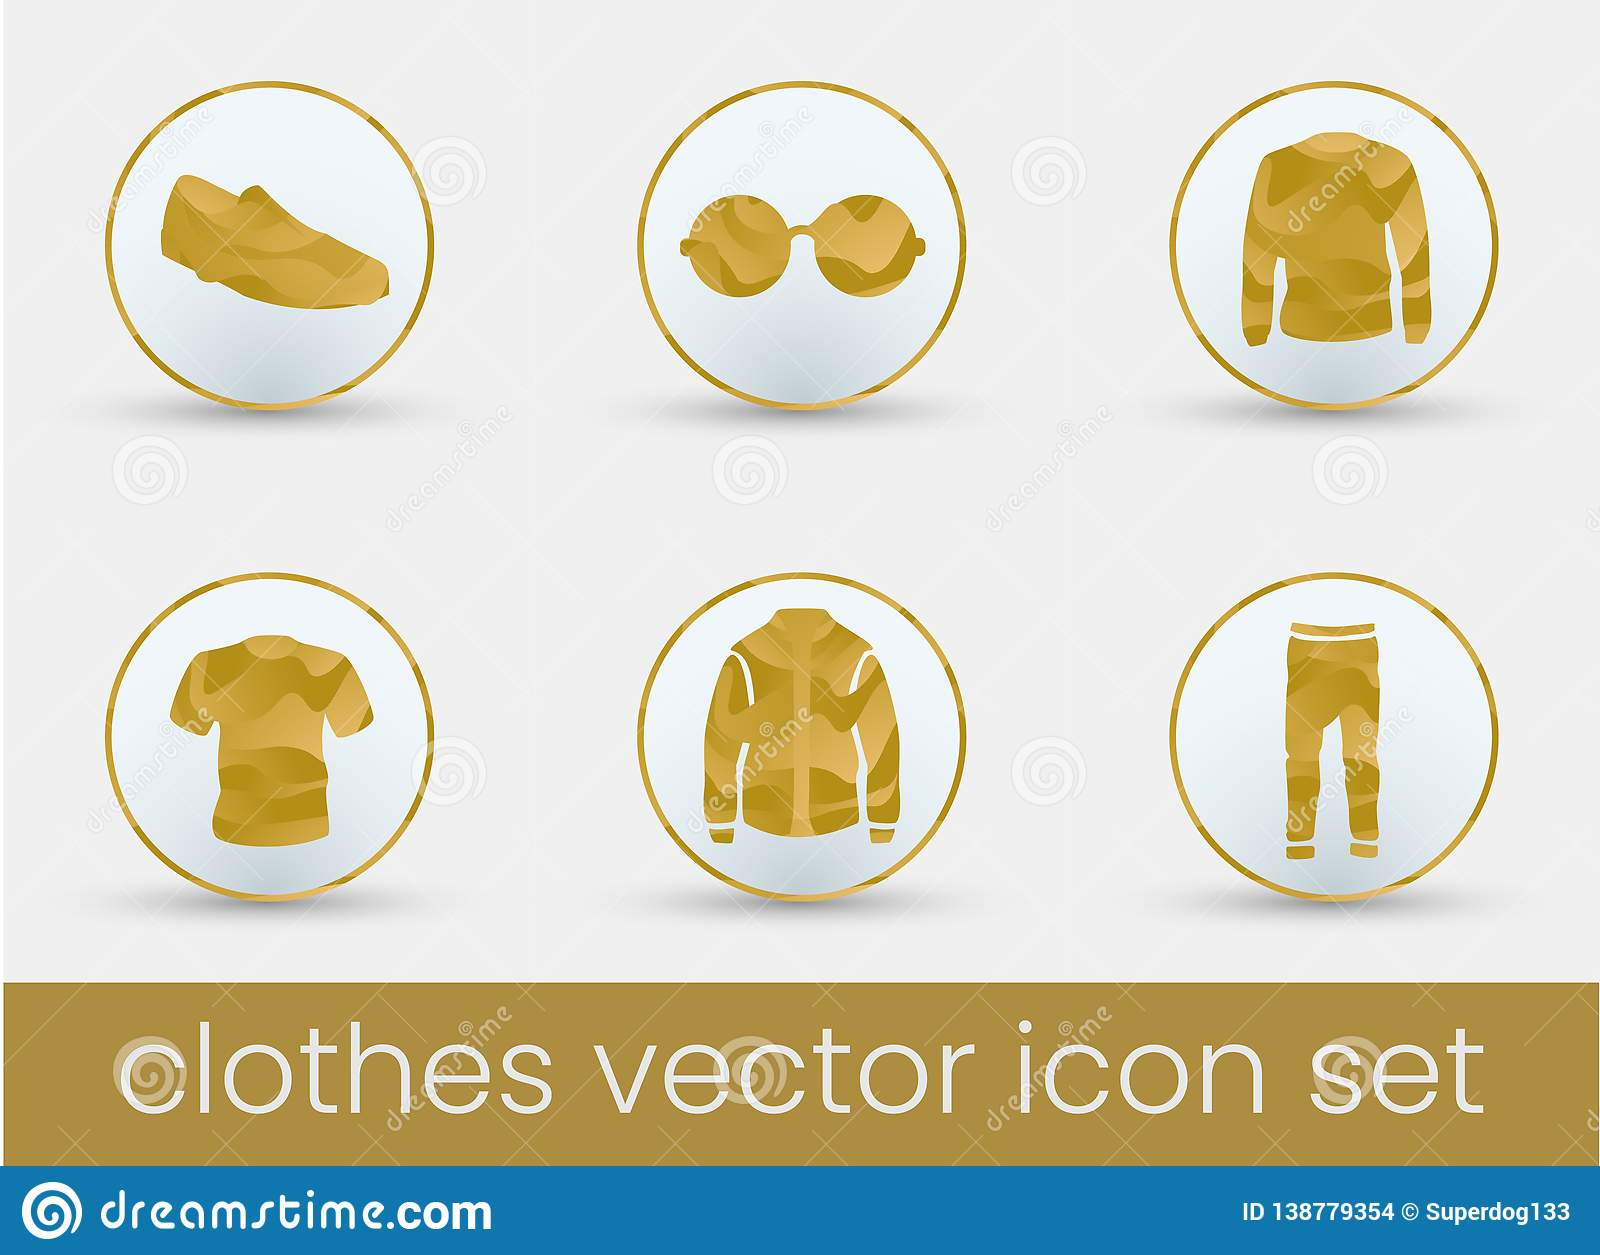 Vector Illustration Instagram: Clothes Icon Set Gold Stock Vector. Illustration Of Jacket